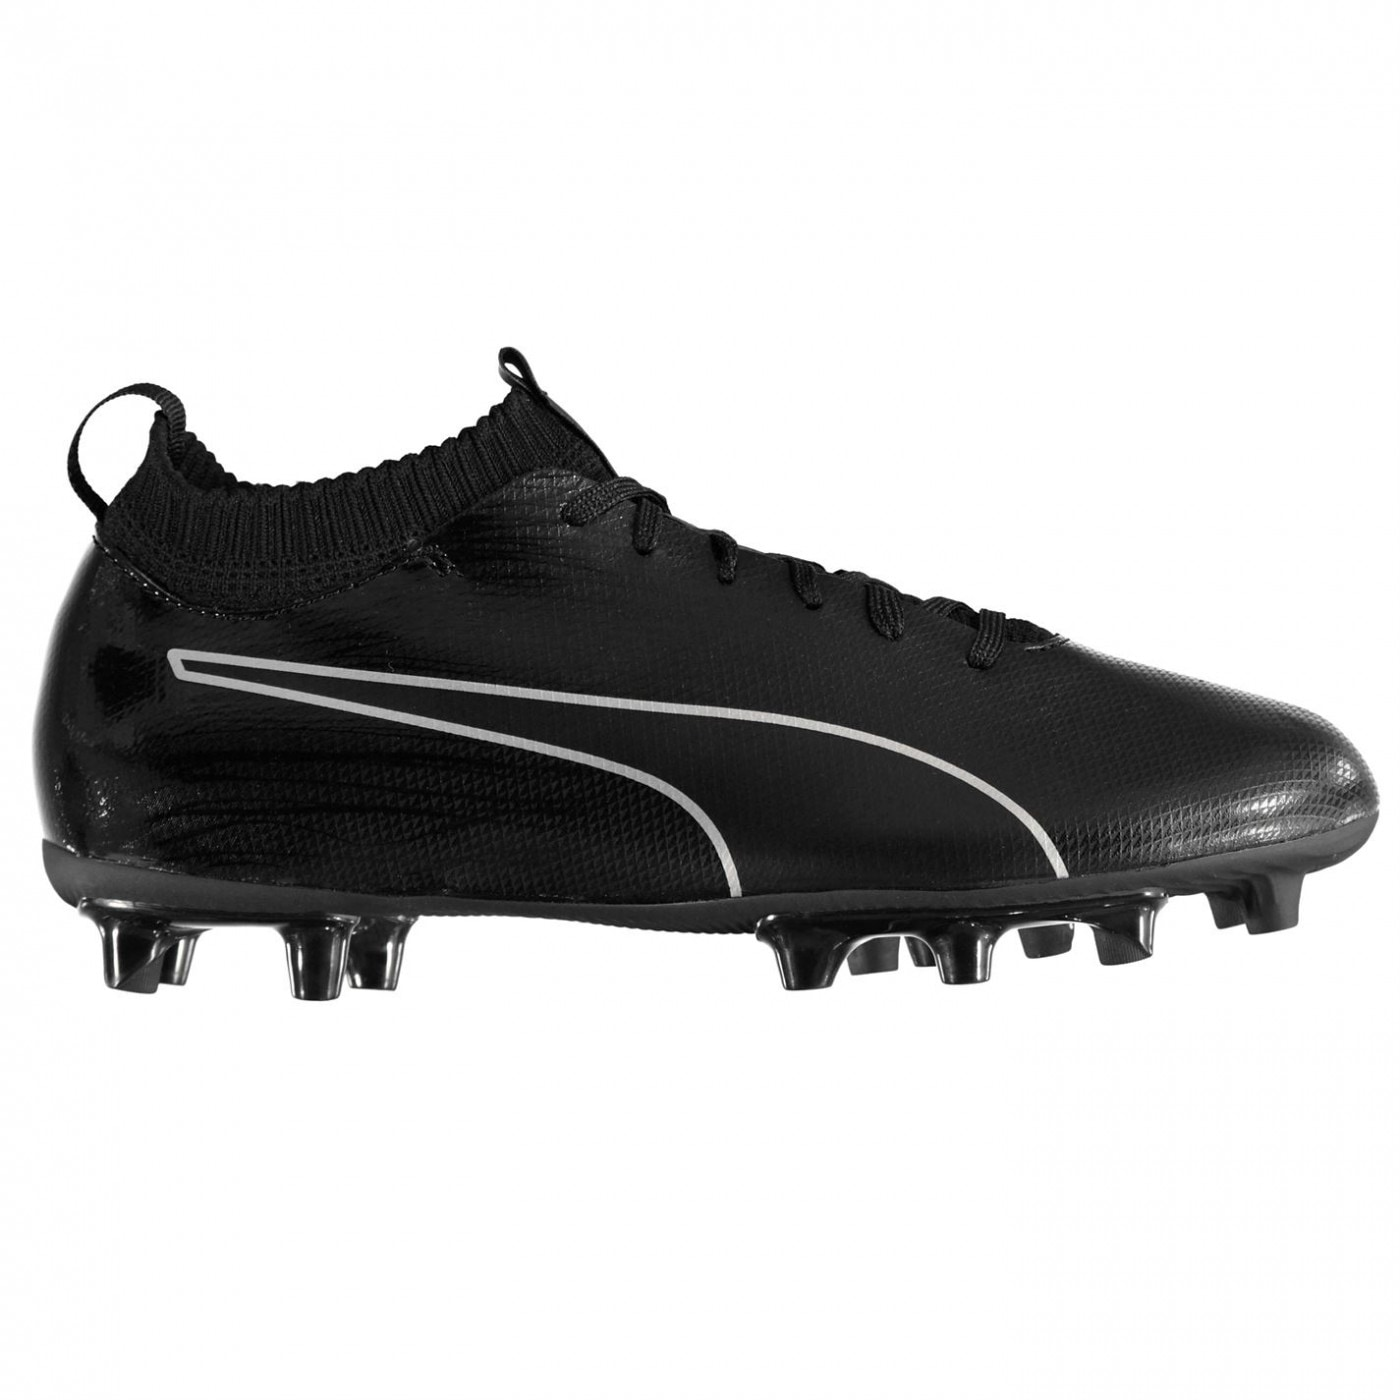 Puma evoKNIT Firm Ground Mens Football Boots